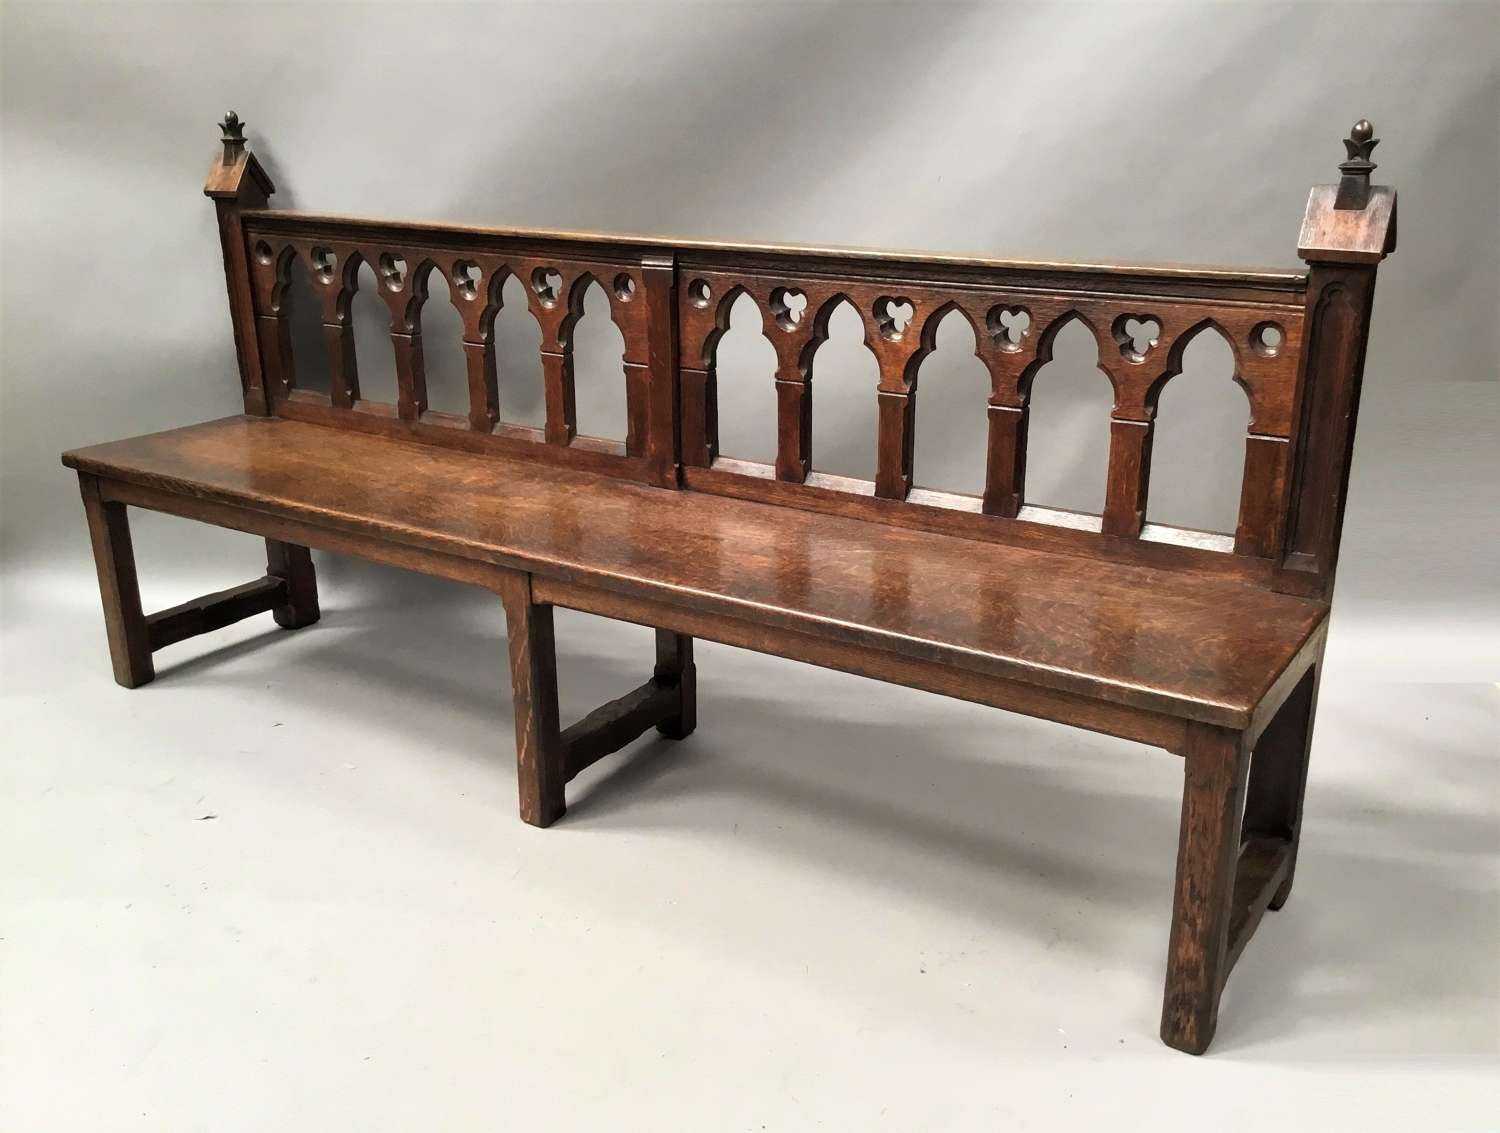 C19th Gothic oak hall bench / seat